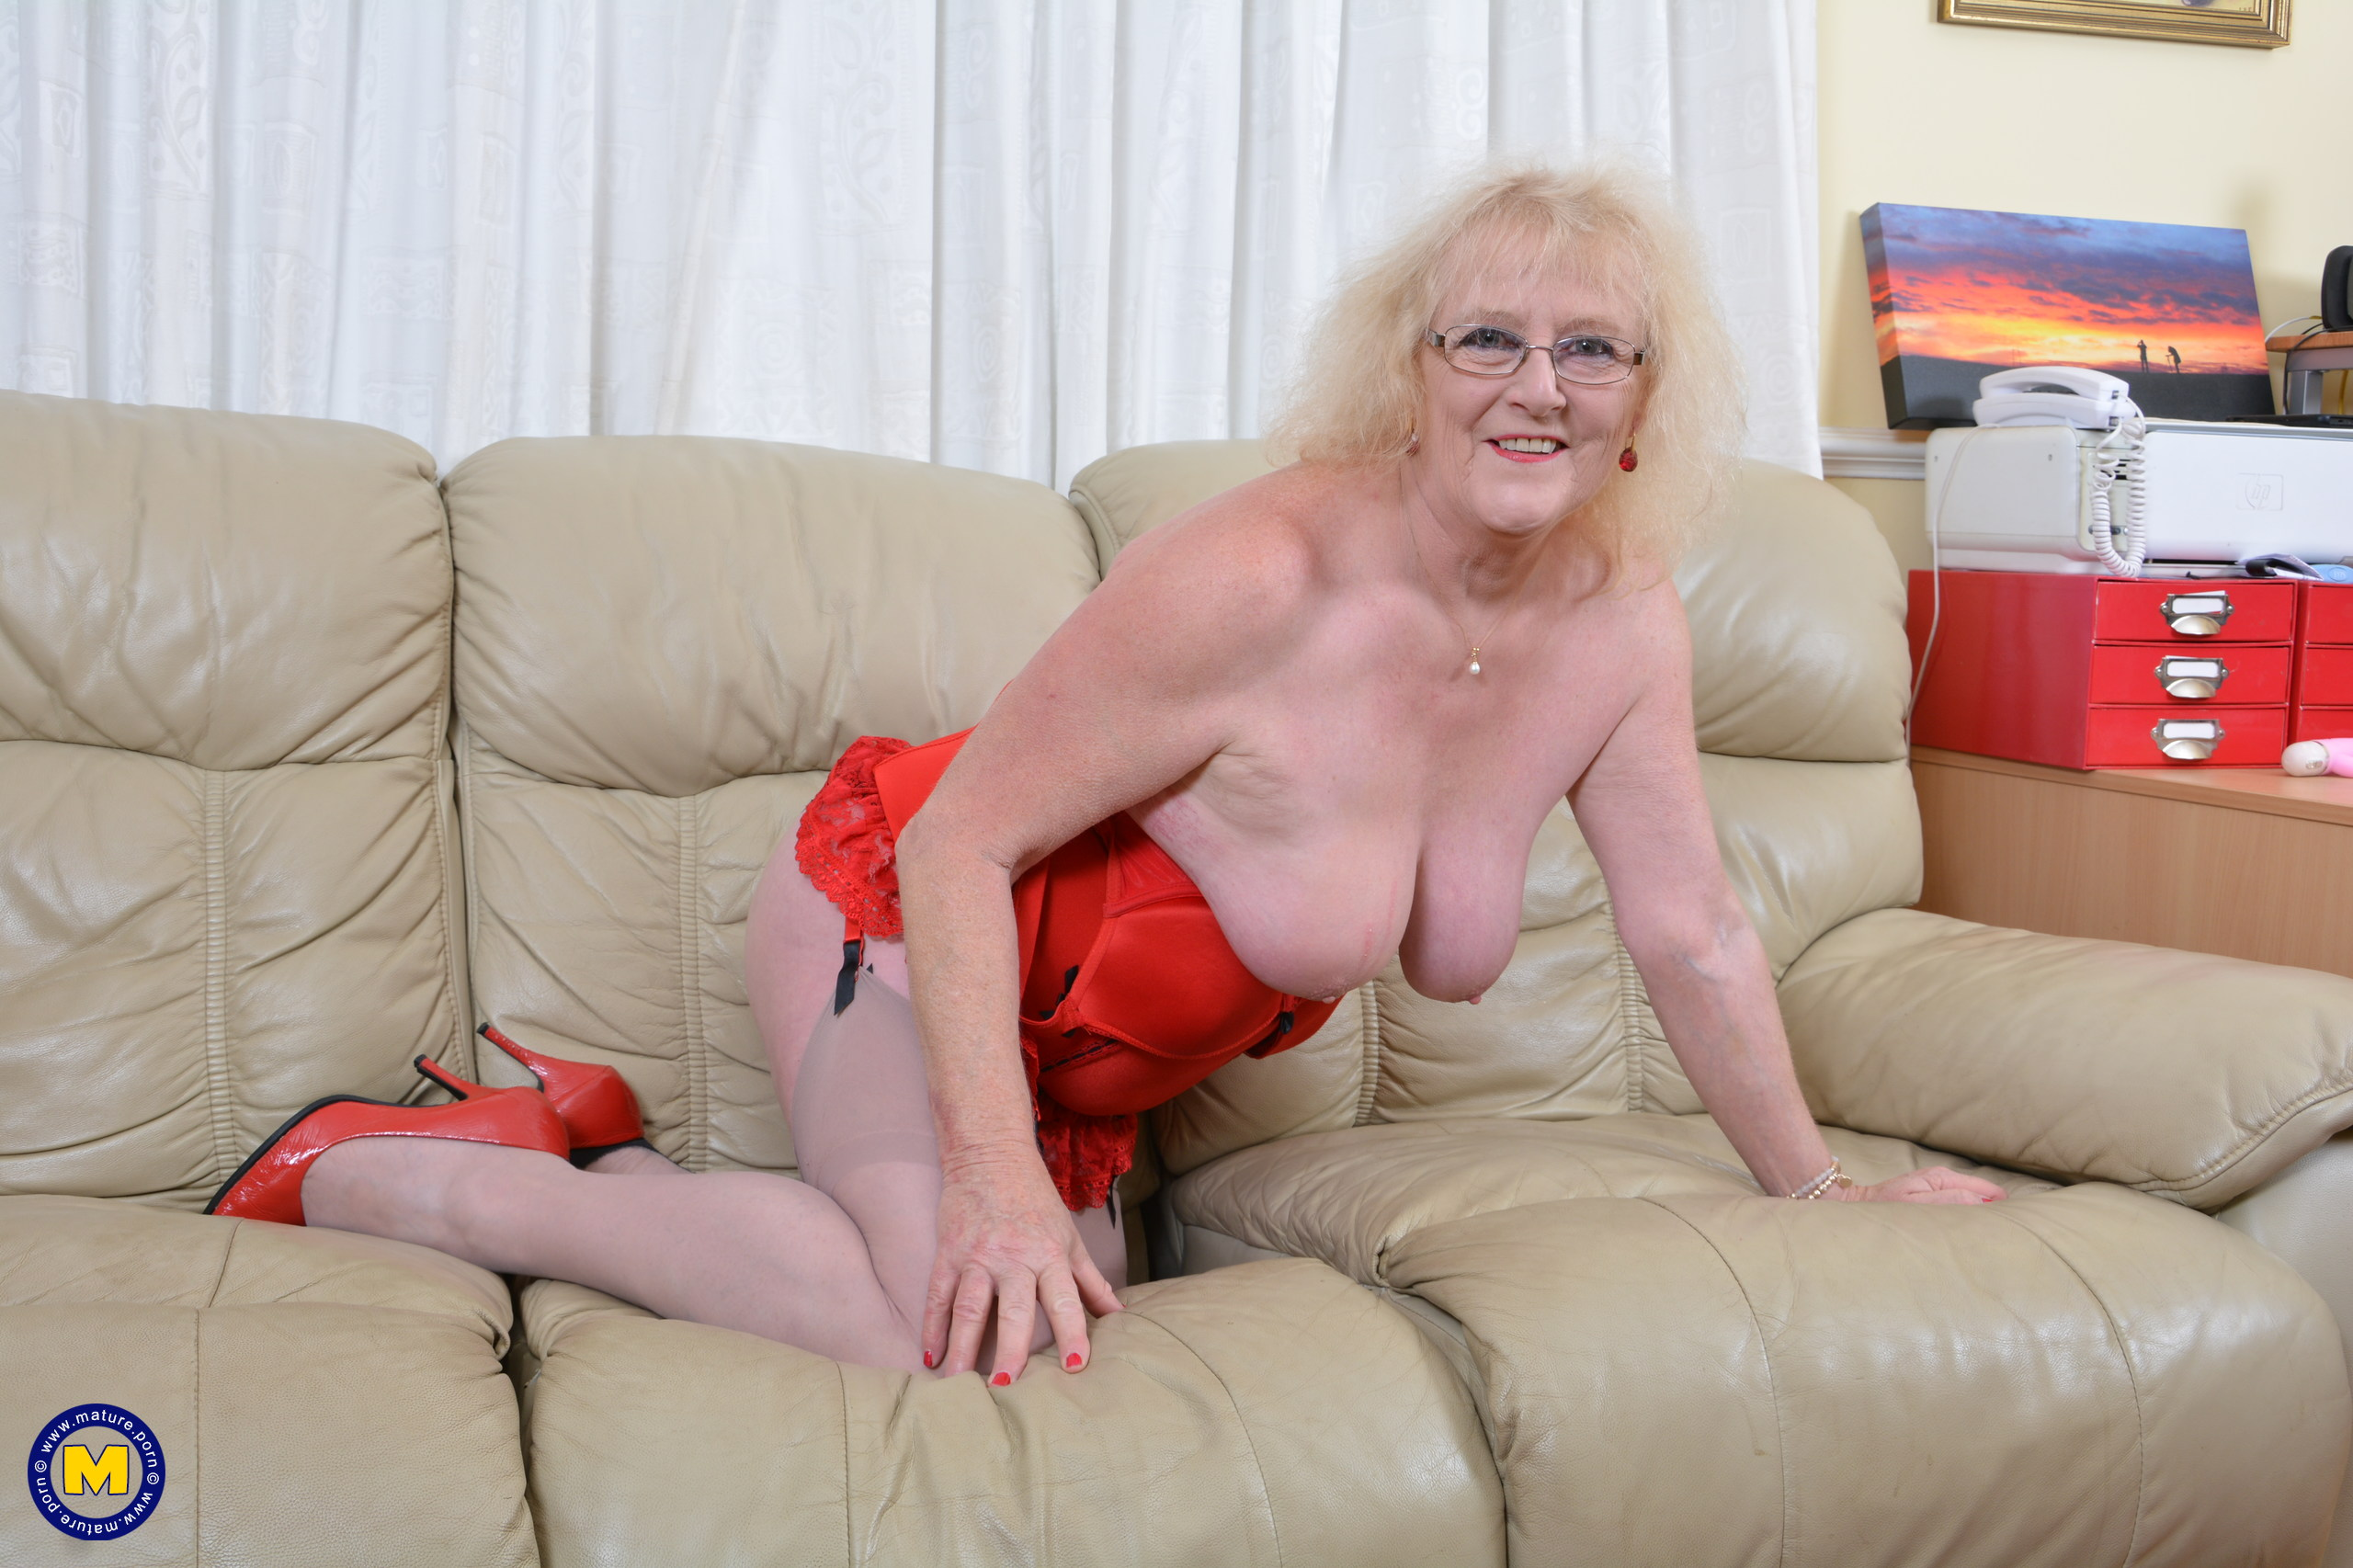 Nasty British mature woman getting moist on her couch